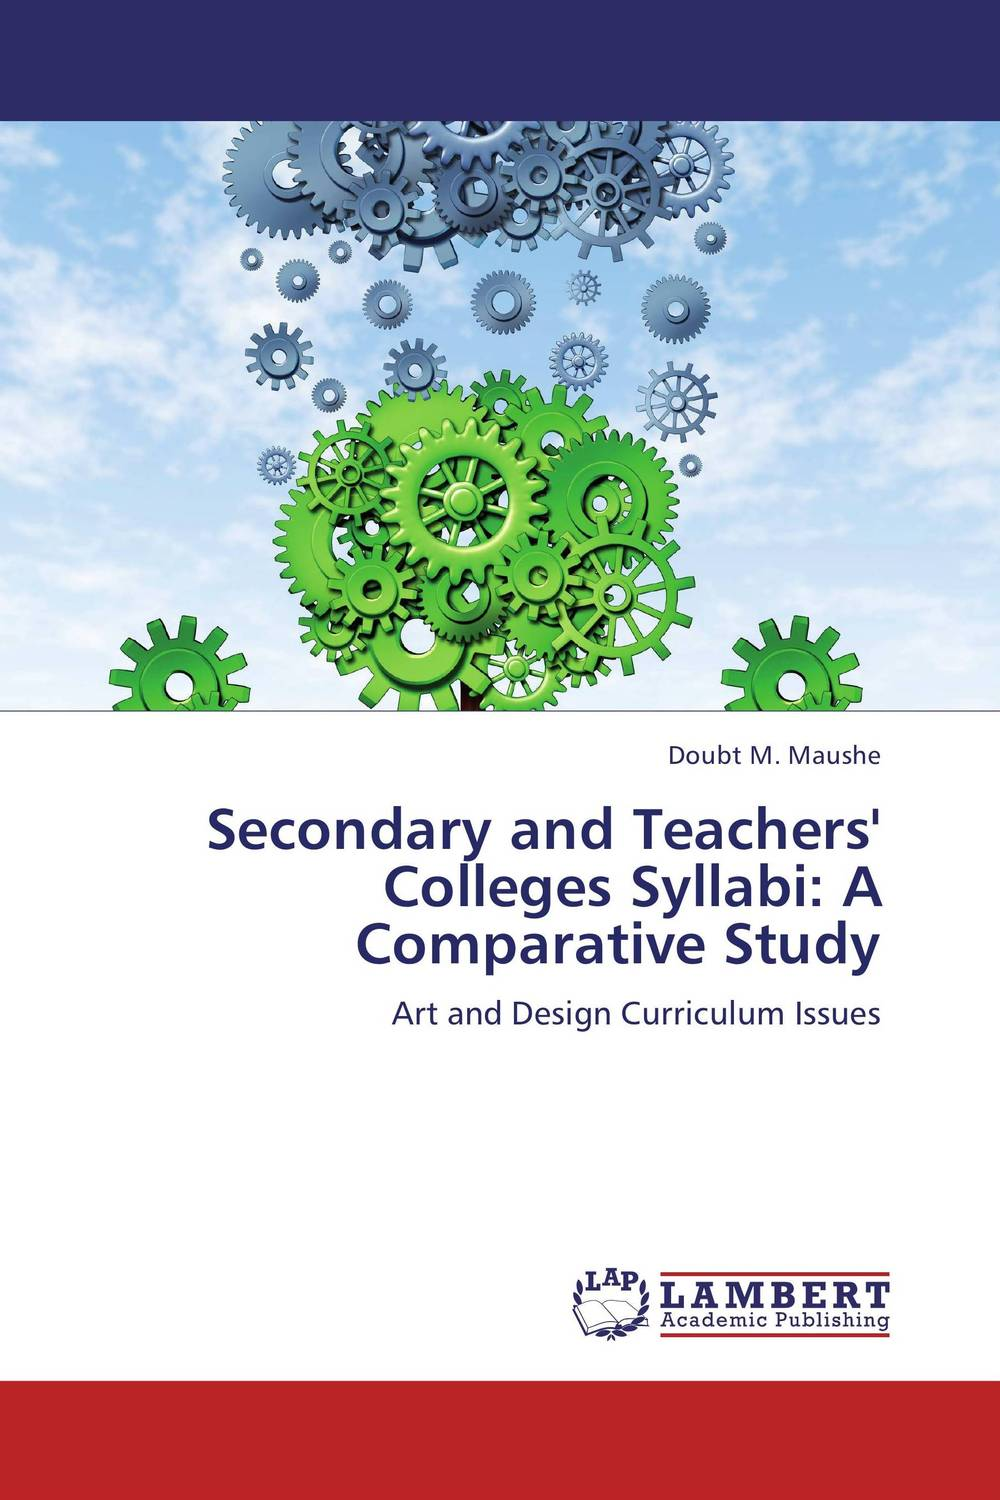 Secondary and Teachers' Colleges Syllabi: A Comparative Study rakesh bhatia surinder bir singh and harpreet kaur organizational development comparative study of engineering colleges